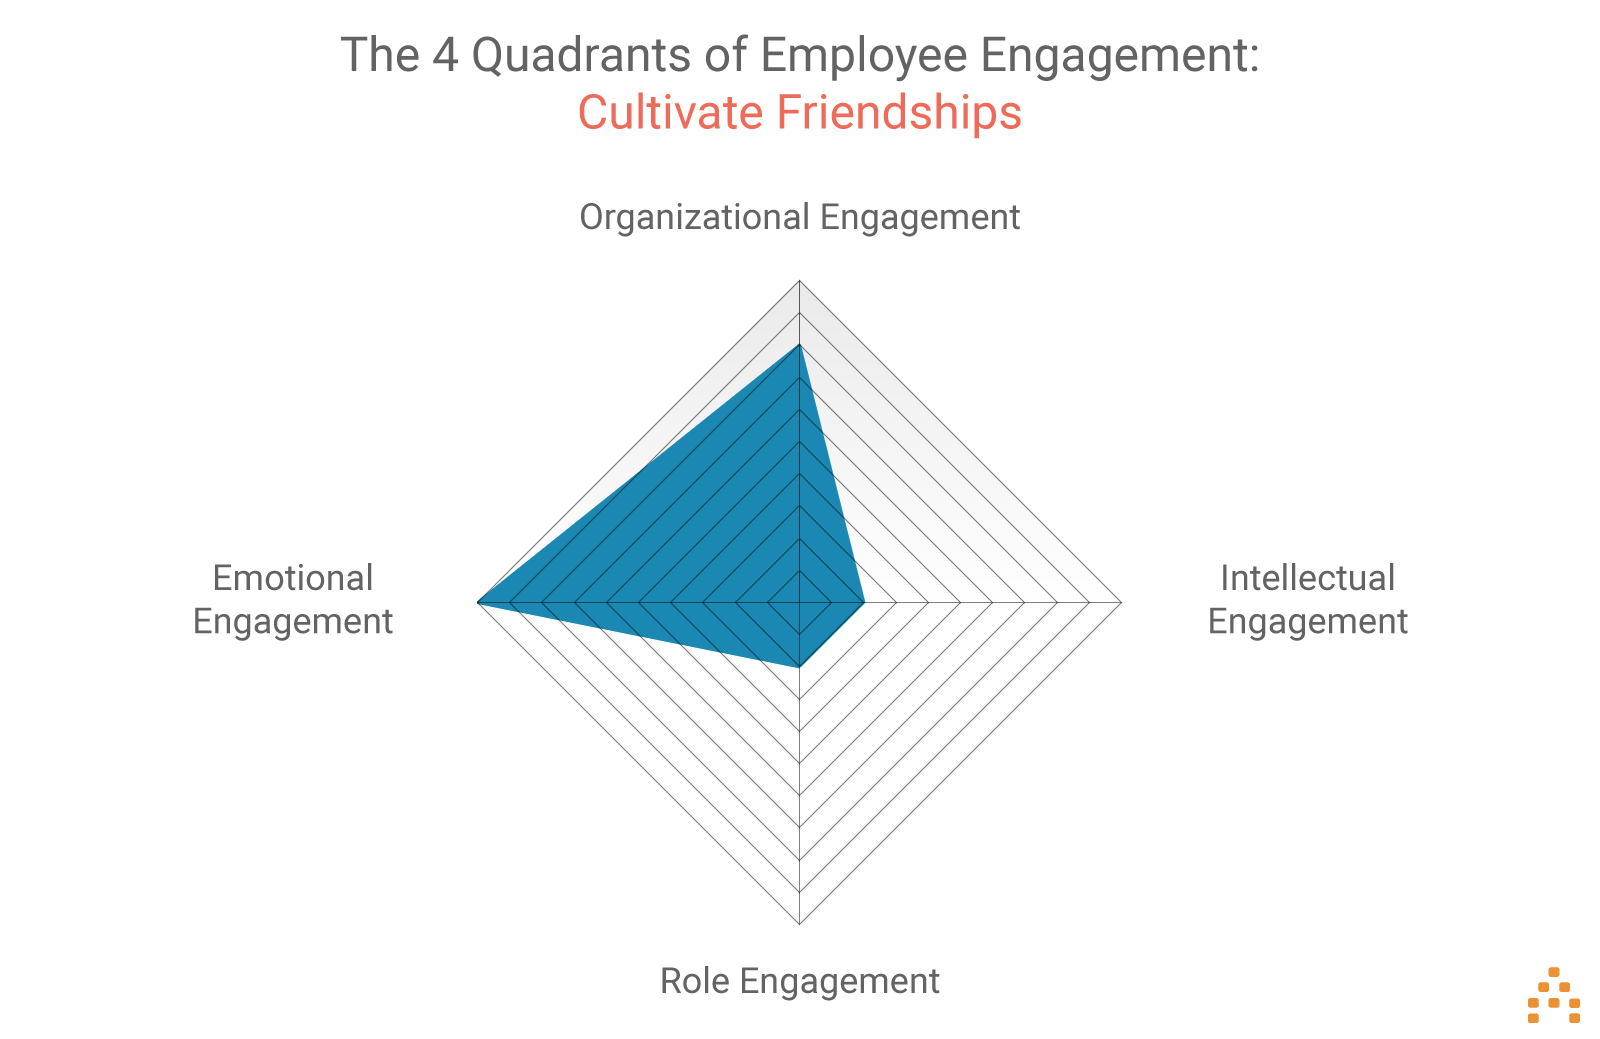 employee-engagement-cultivate-friendships